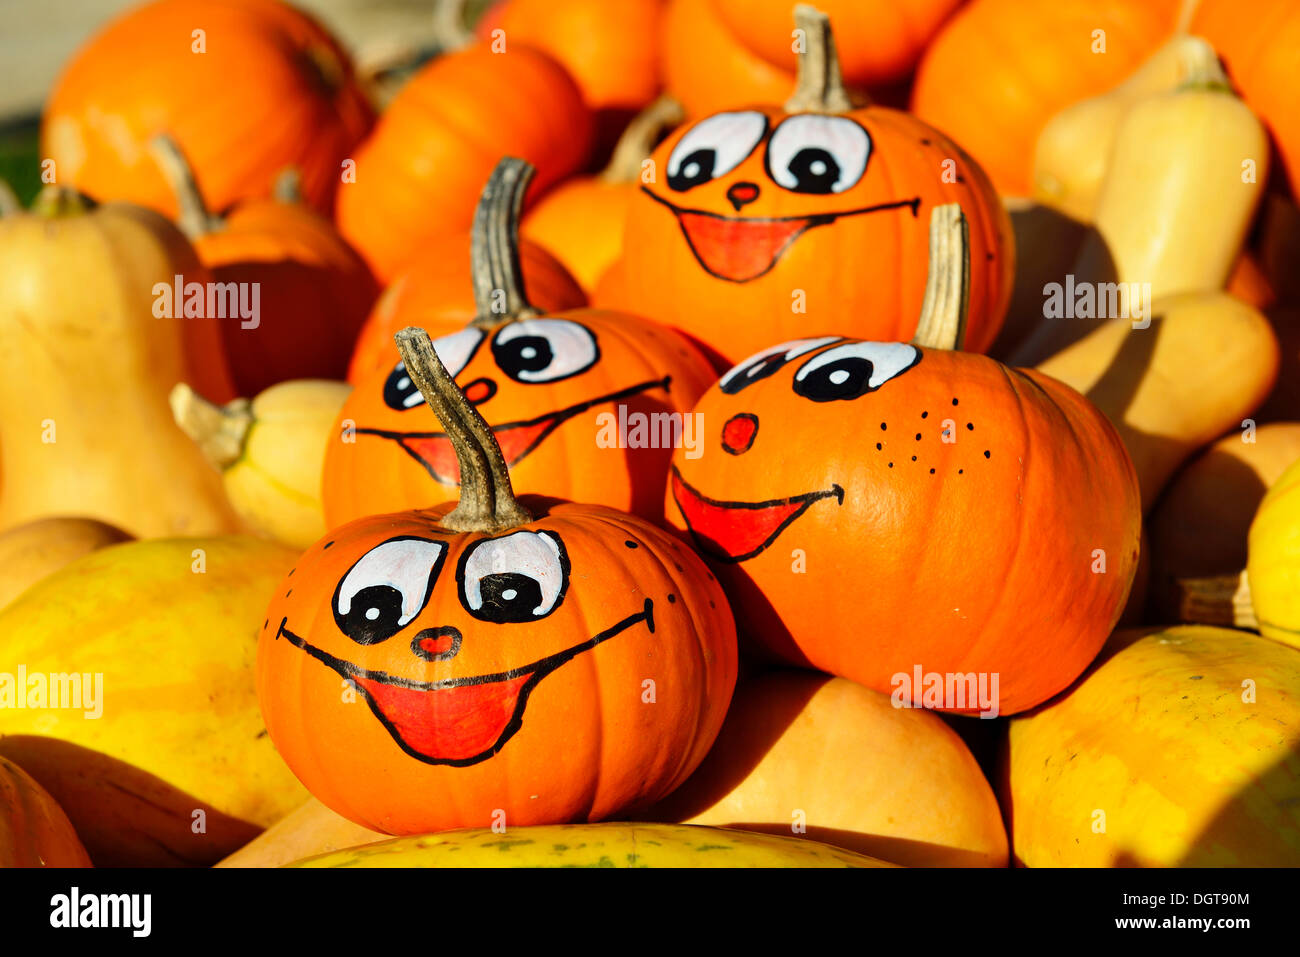 Gourds, some with painted faces, Chiemgau, Upper Bavaria, Bavaria - Stock Image